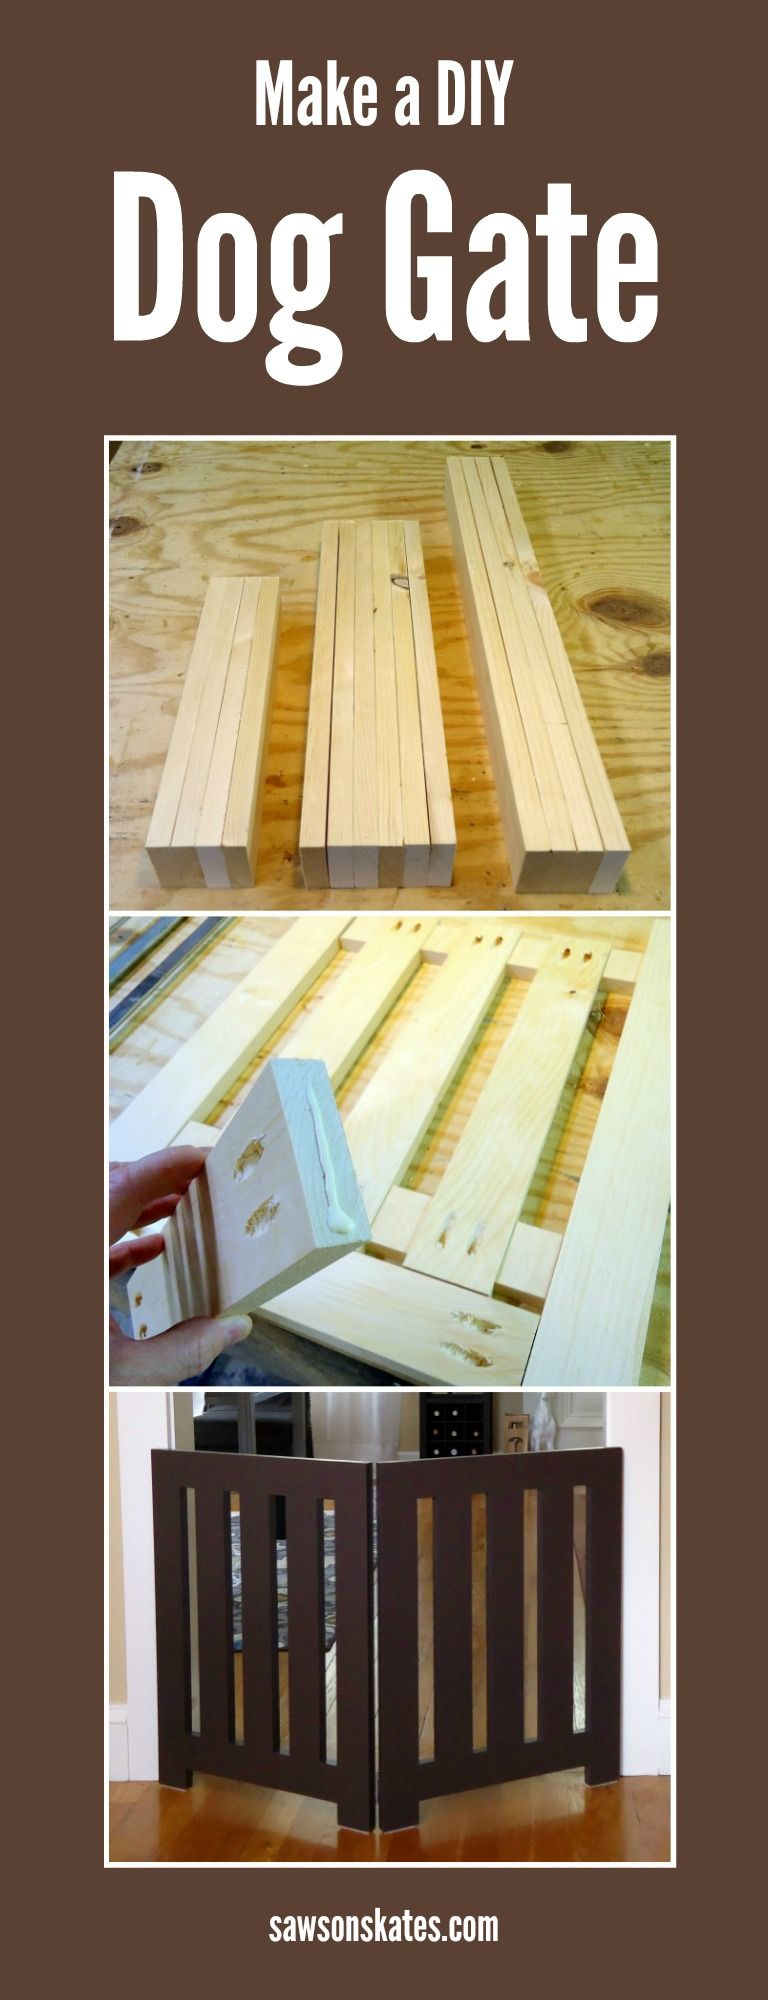 13 Diy Dog Gate Ideas: How To Make A DIY Dog Gate